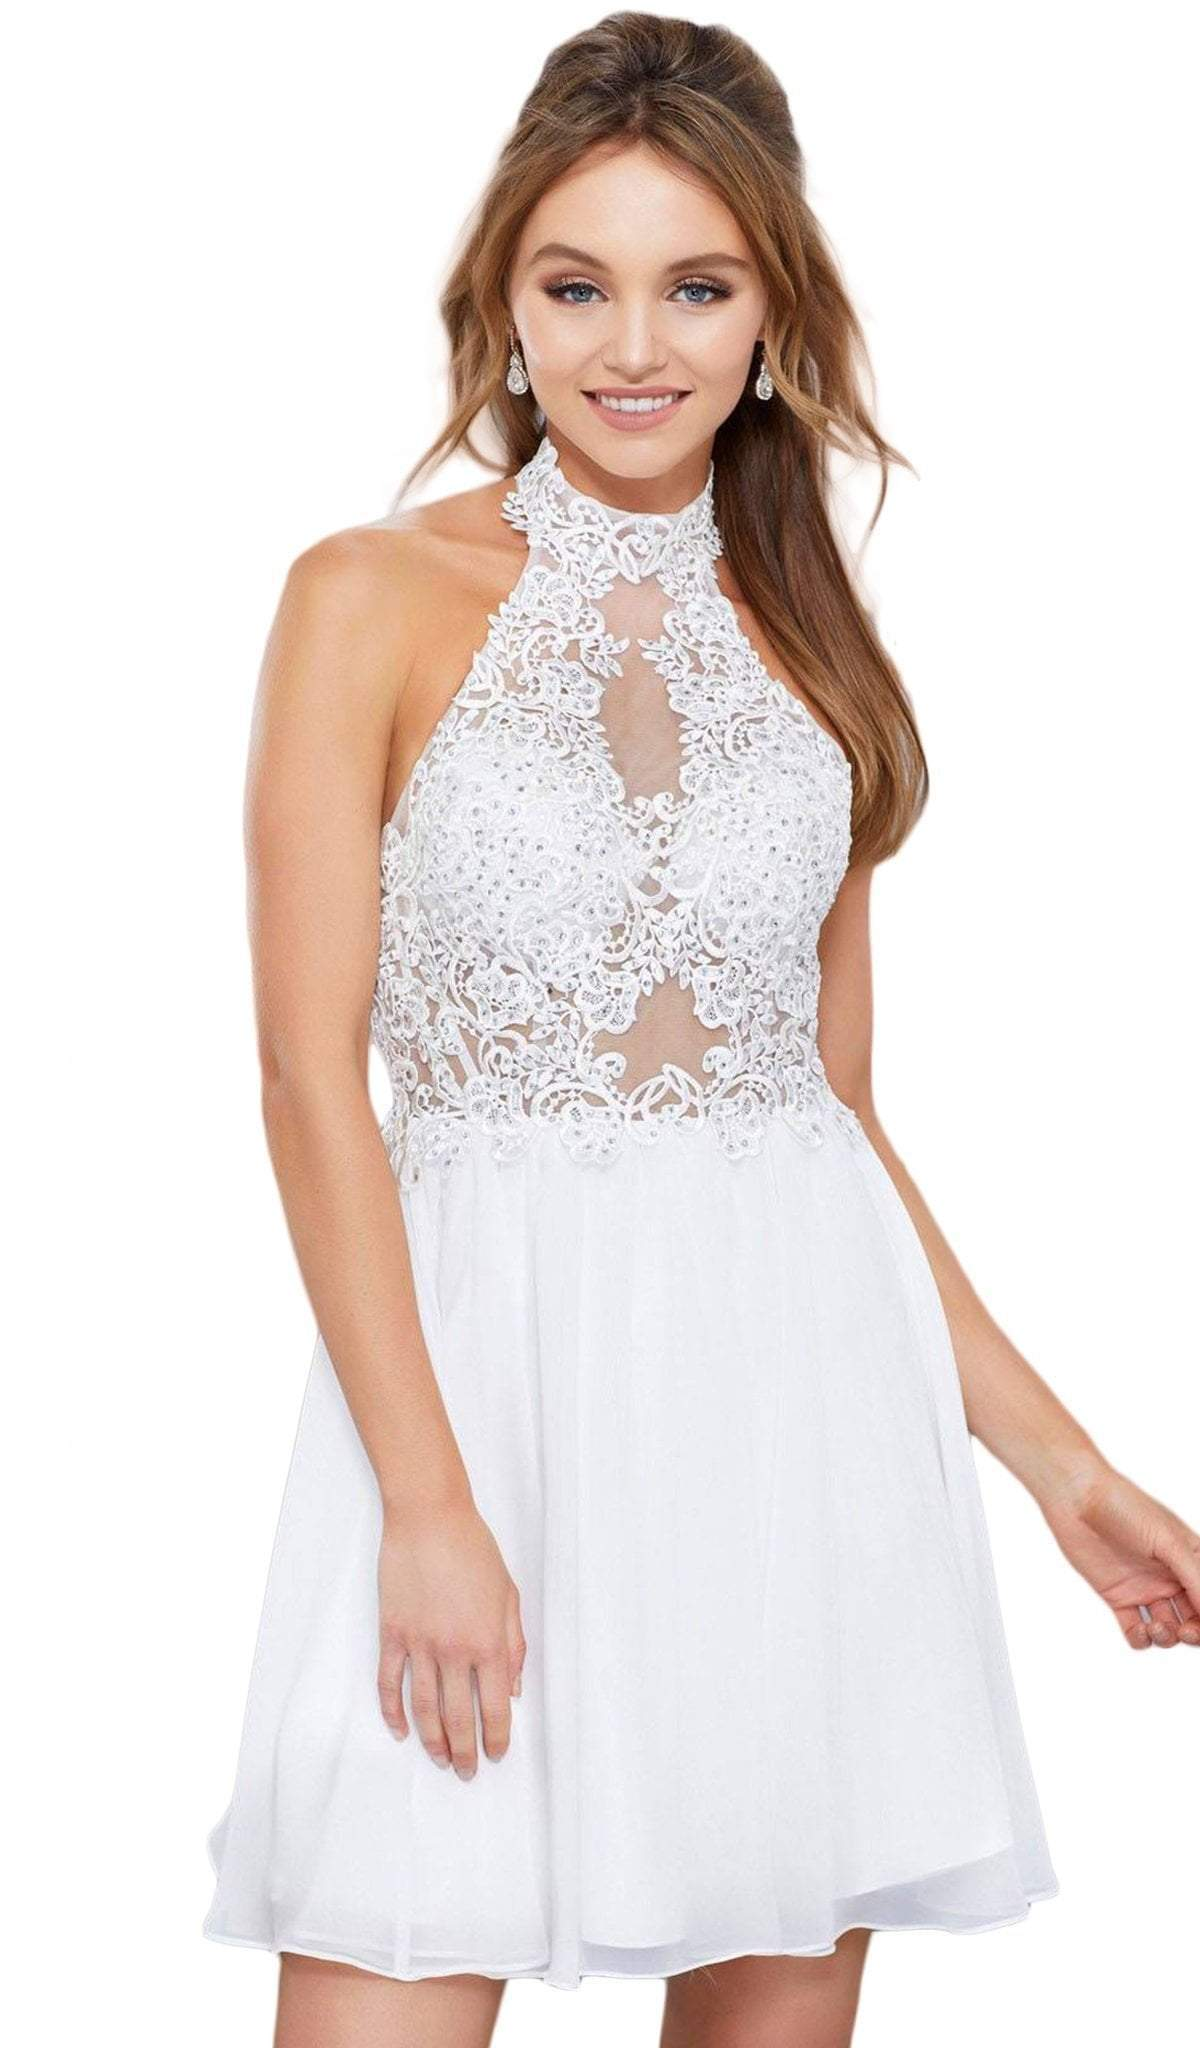 Nox Anabel - Lace Applique A-line Dress 6308SC